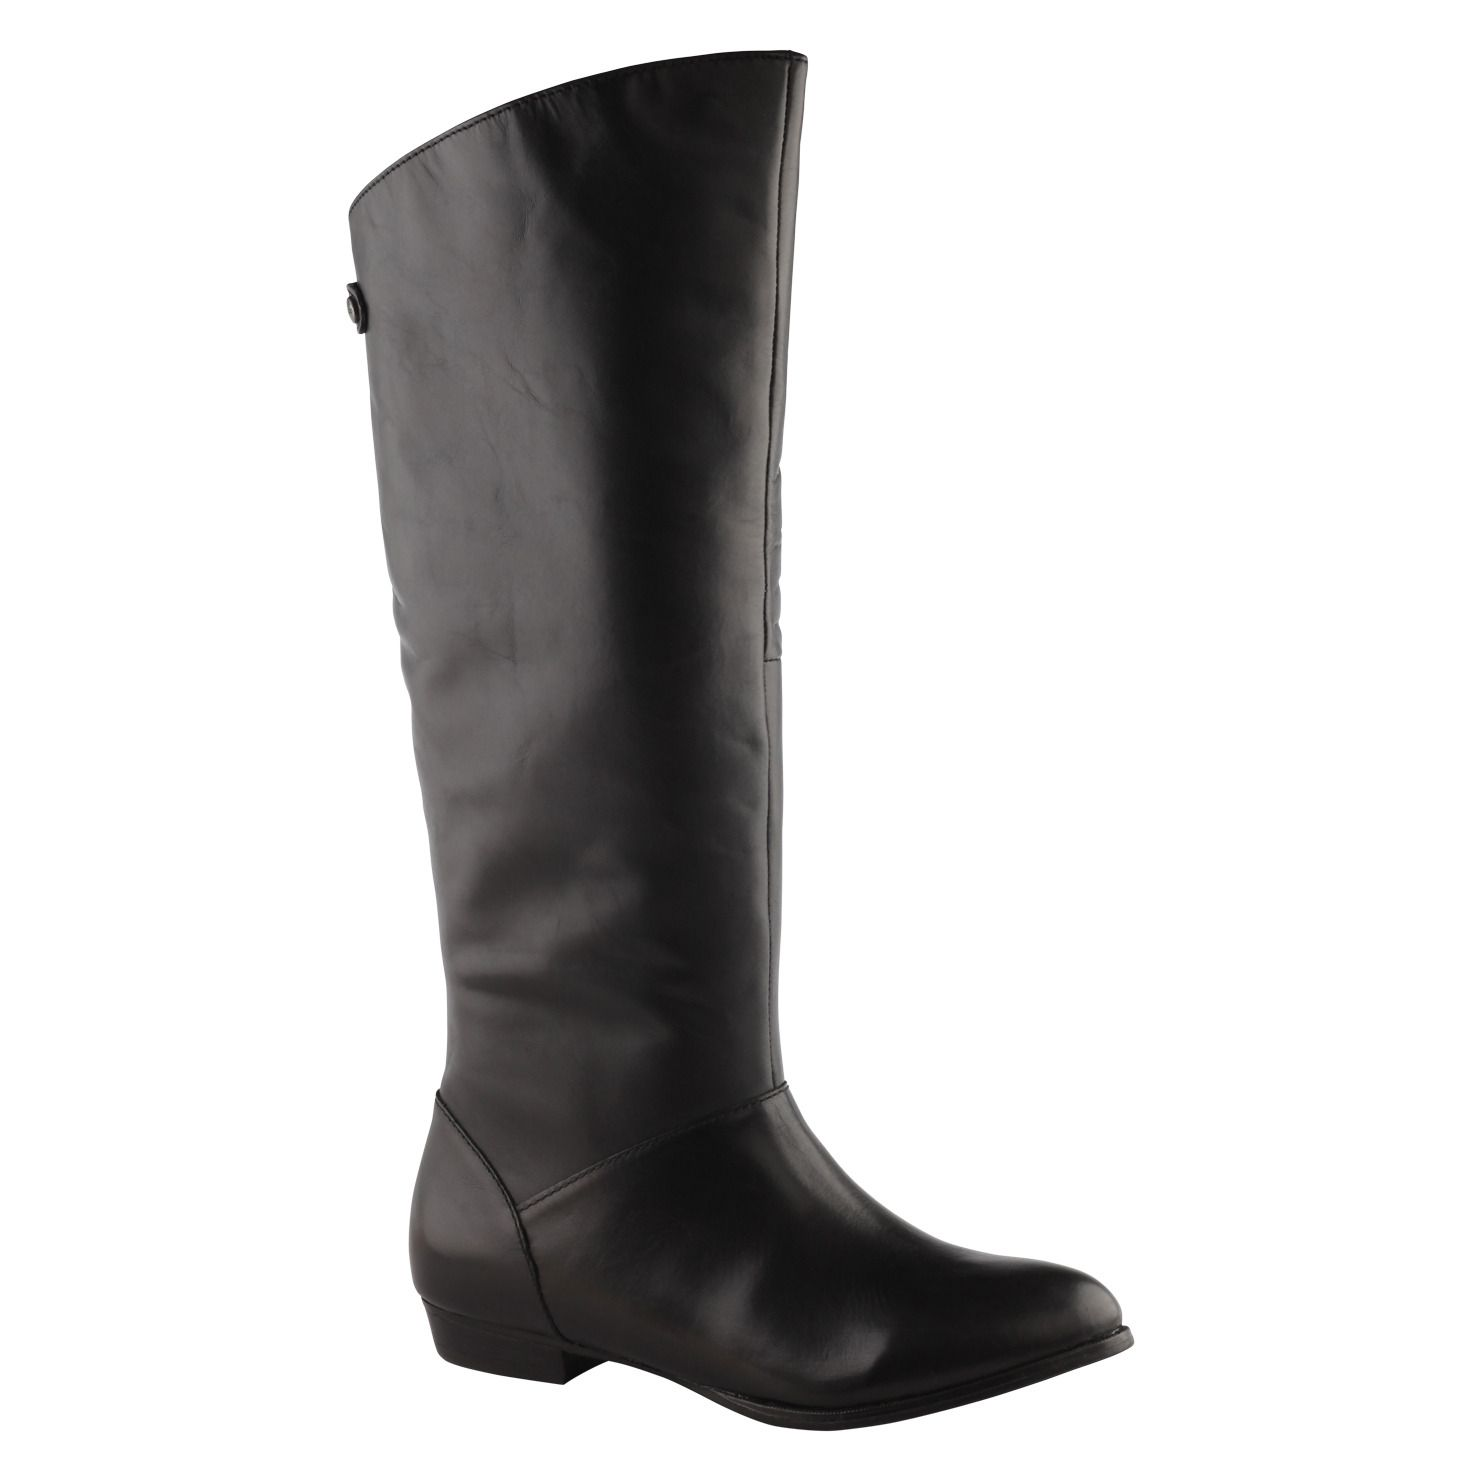 TAITE - women's tall boots boots for sale at ALDO Shoes. 8.5